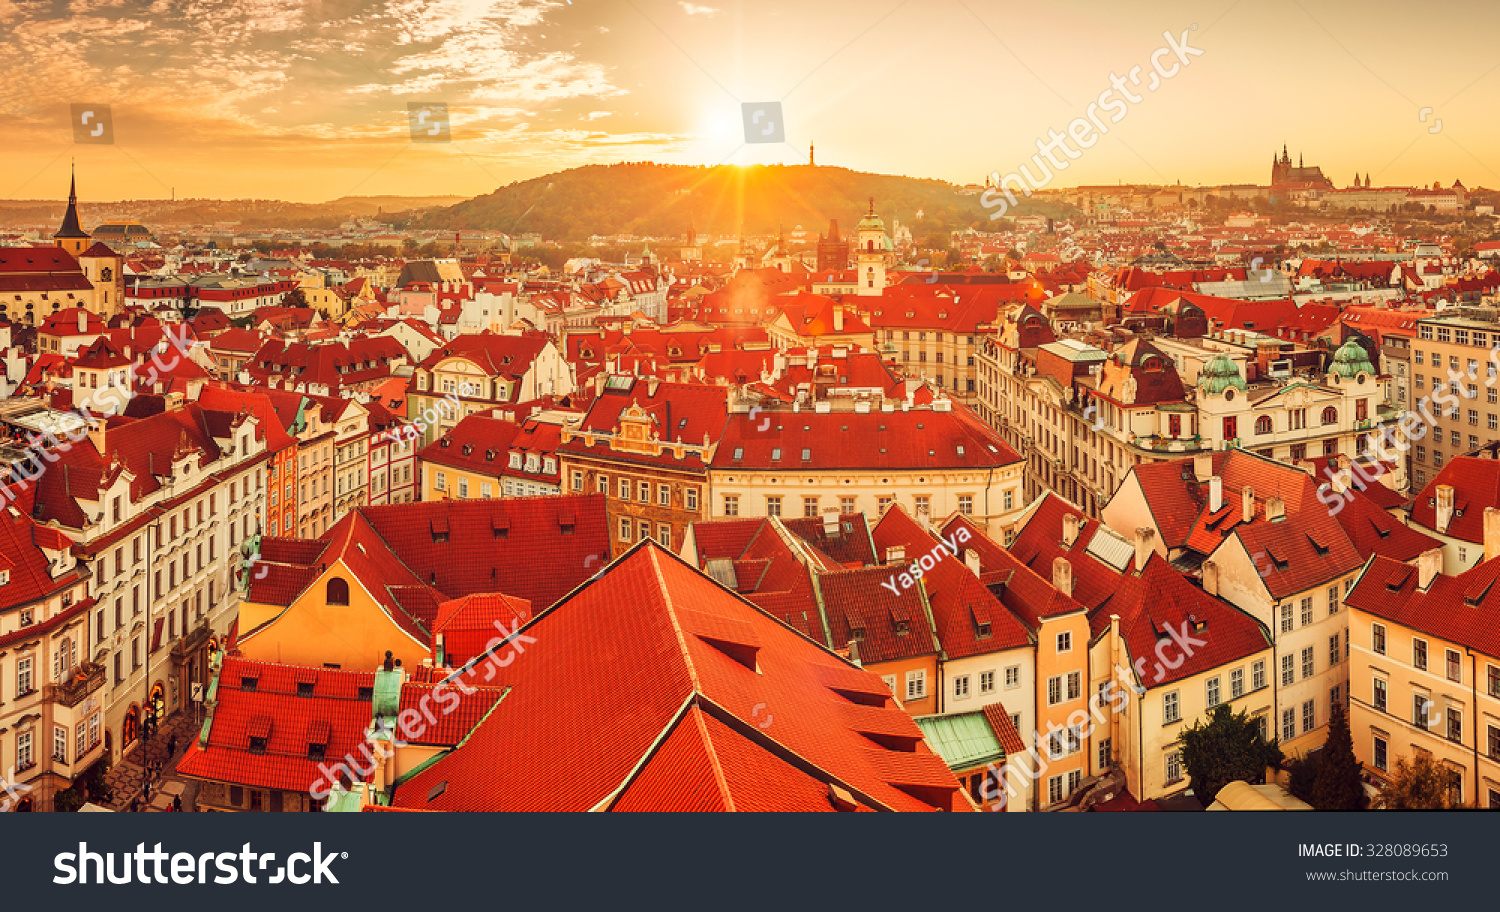 Wonderful Top View To Red Roofs Skyline Of Prague City Czech Republic. Illustration